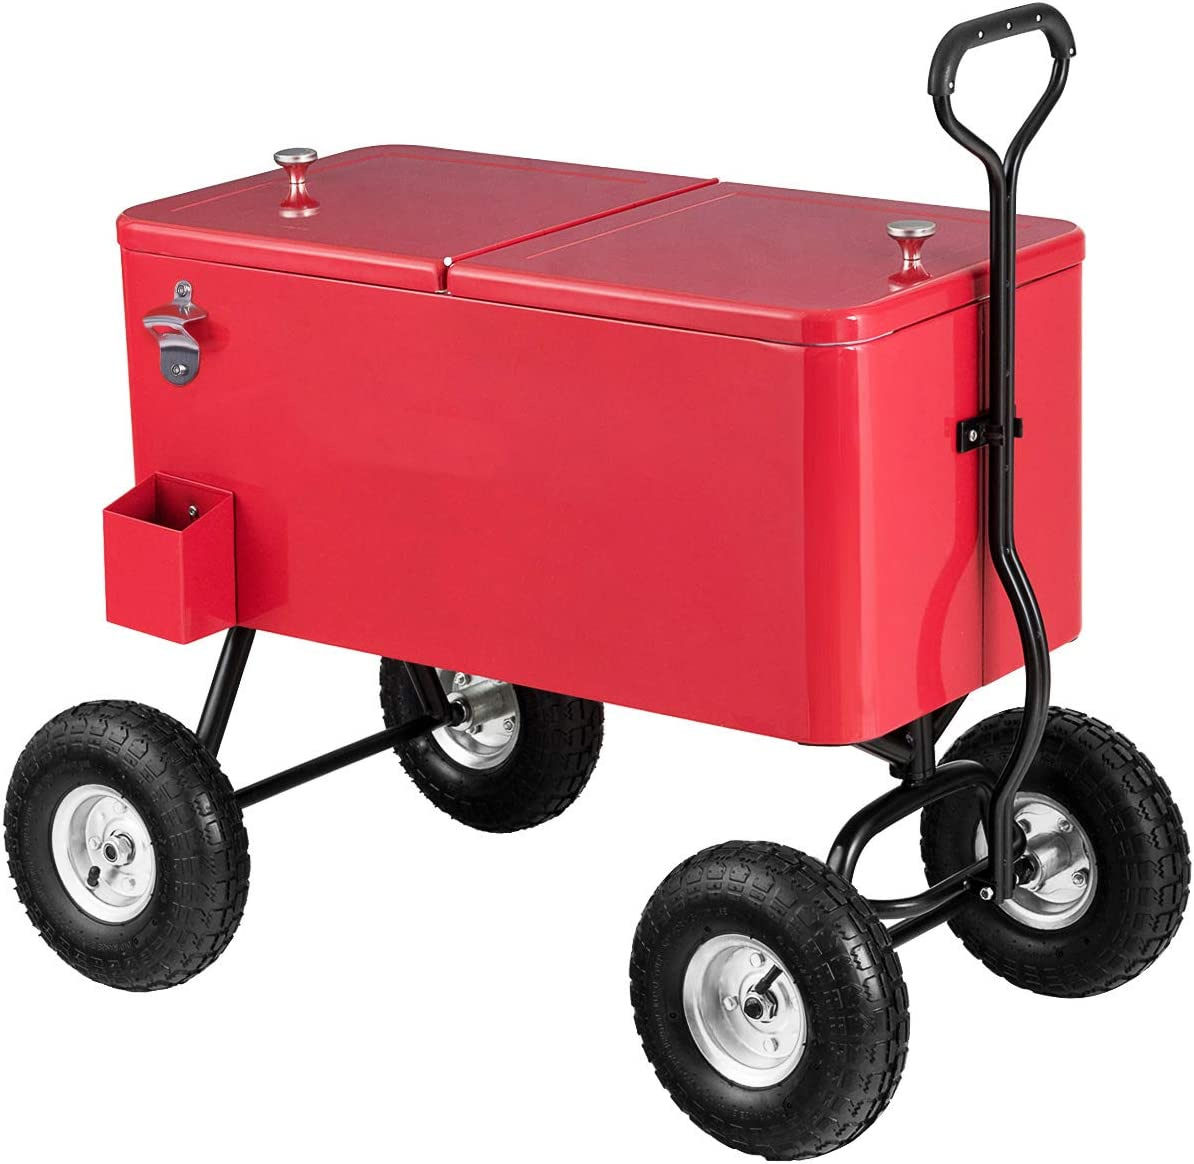 Giantex 80QT Wagon Cooler Rolling Cooler Ice, with Long Handle and 10